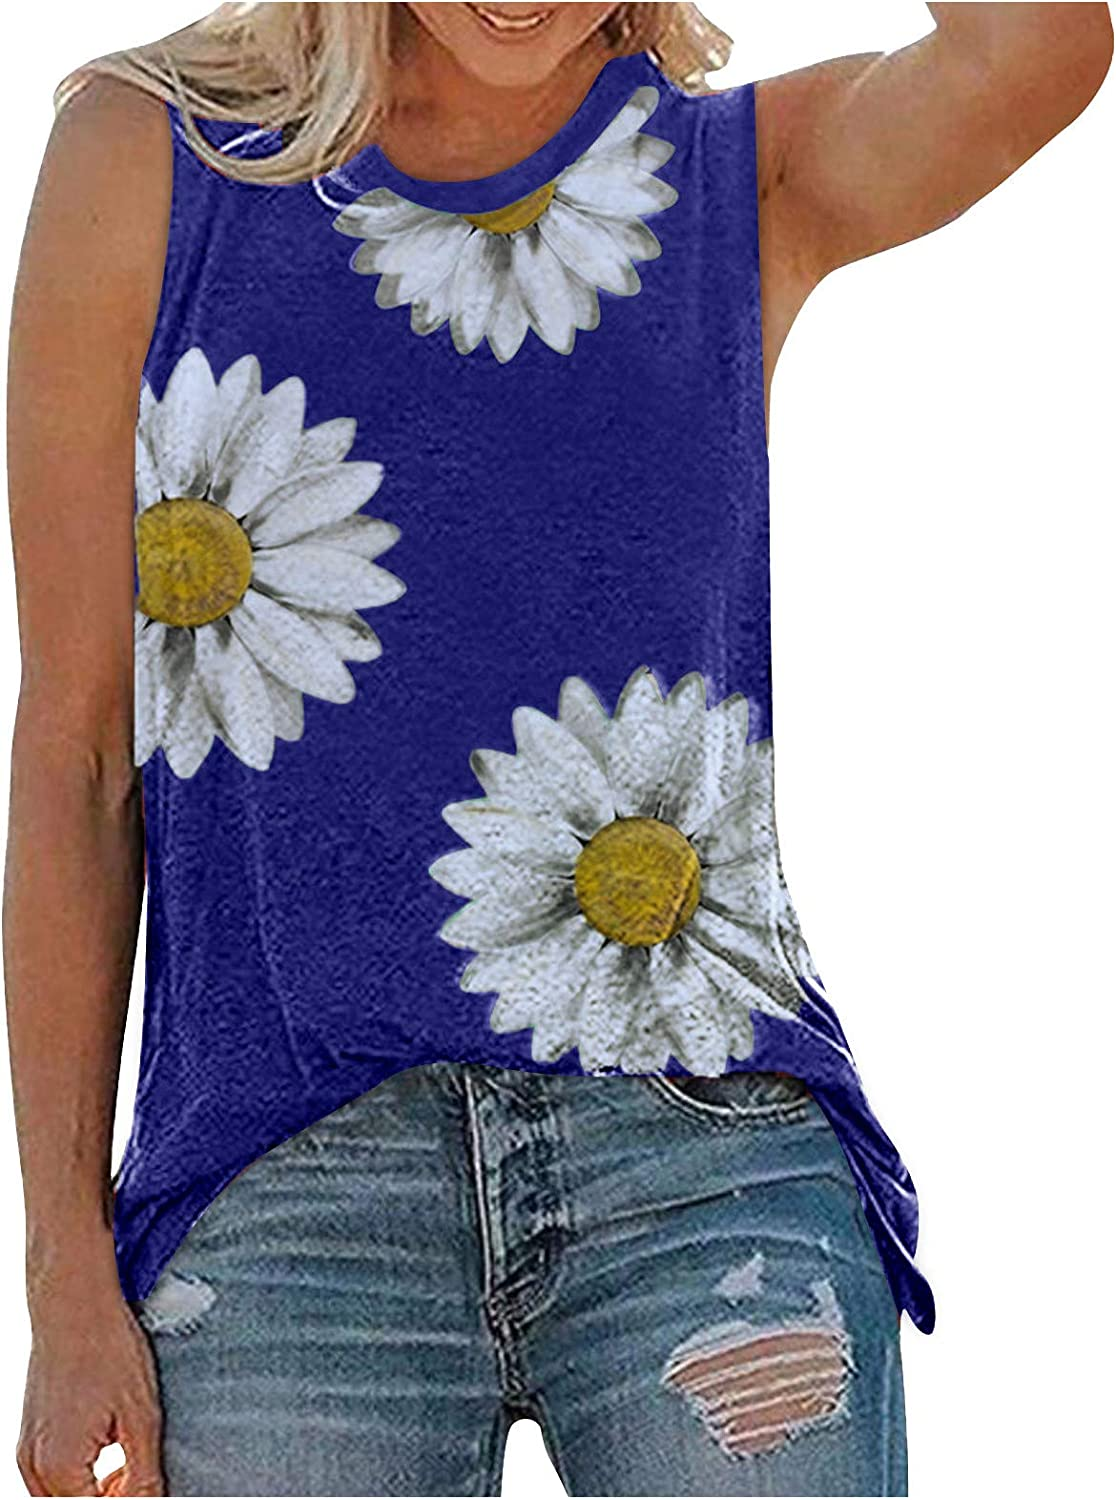 Summer Tops for Women,Padded Shoulder Tops for Women Crop Top Shirts Sleeveless Workout Blouse Loose Tee Crop Tops